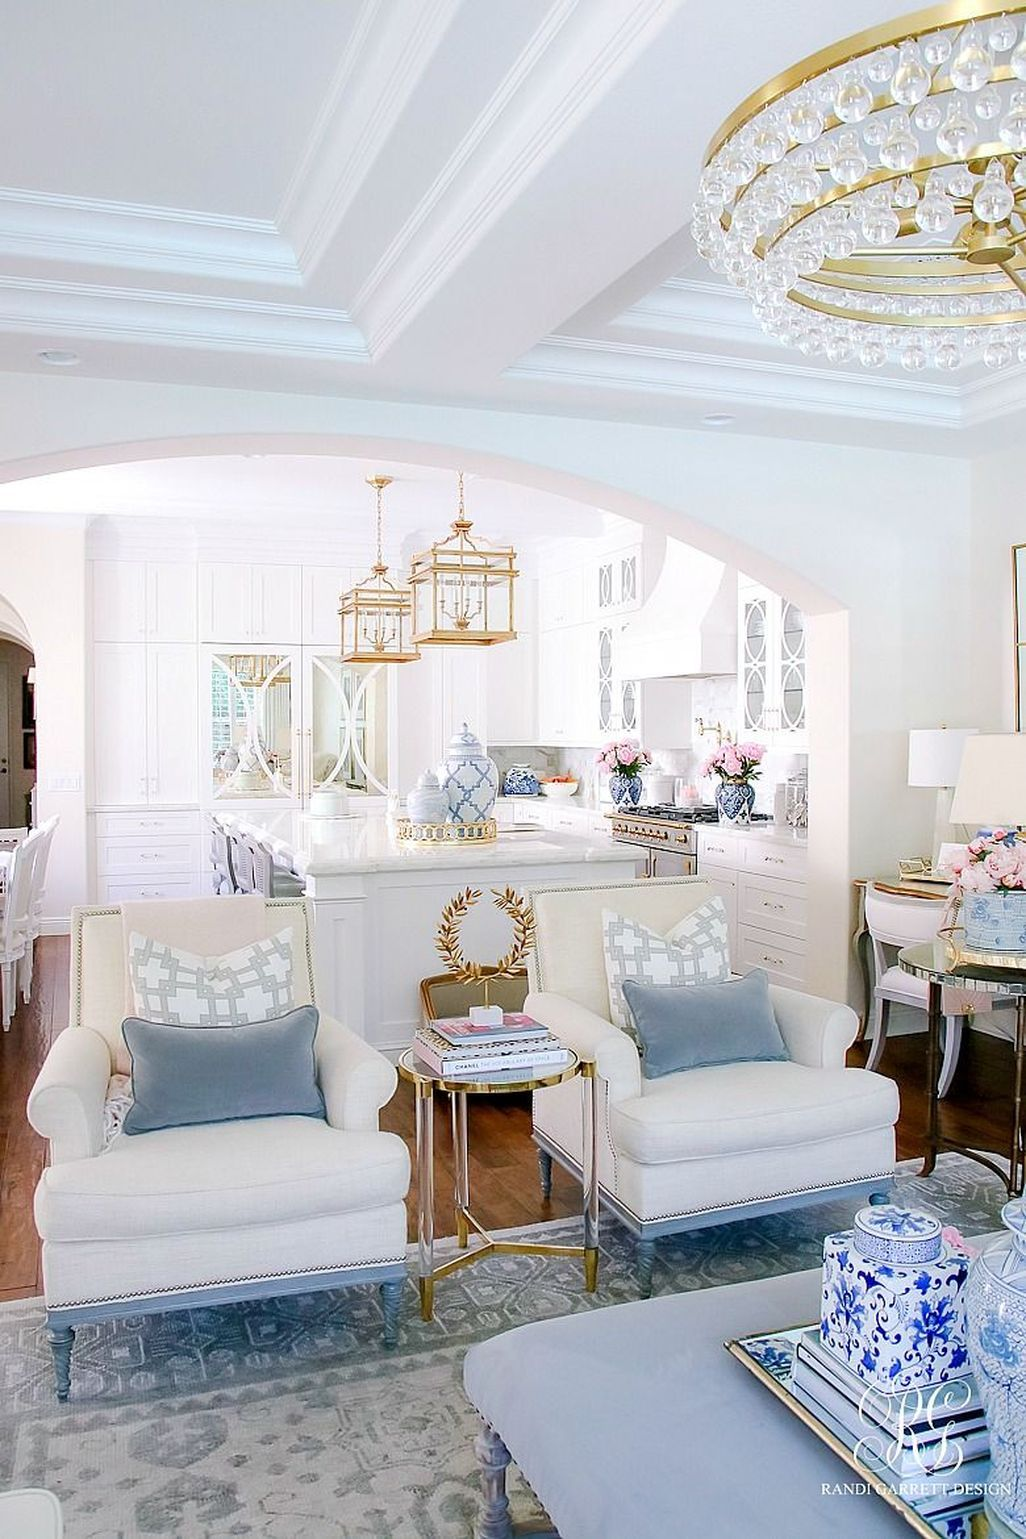 Pin by samantha fitzgerald on future home in pinterest decor living room and house design also rh